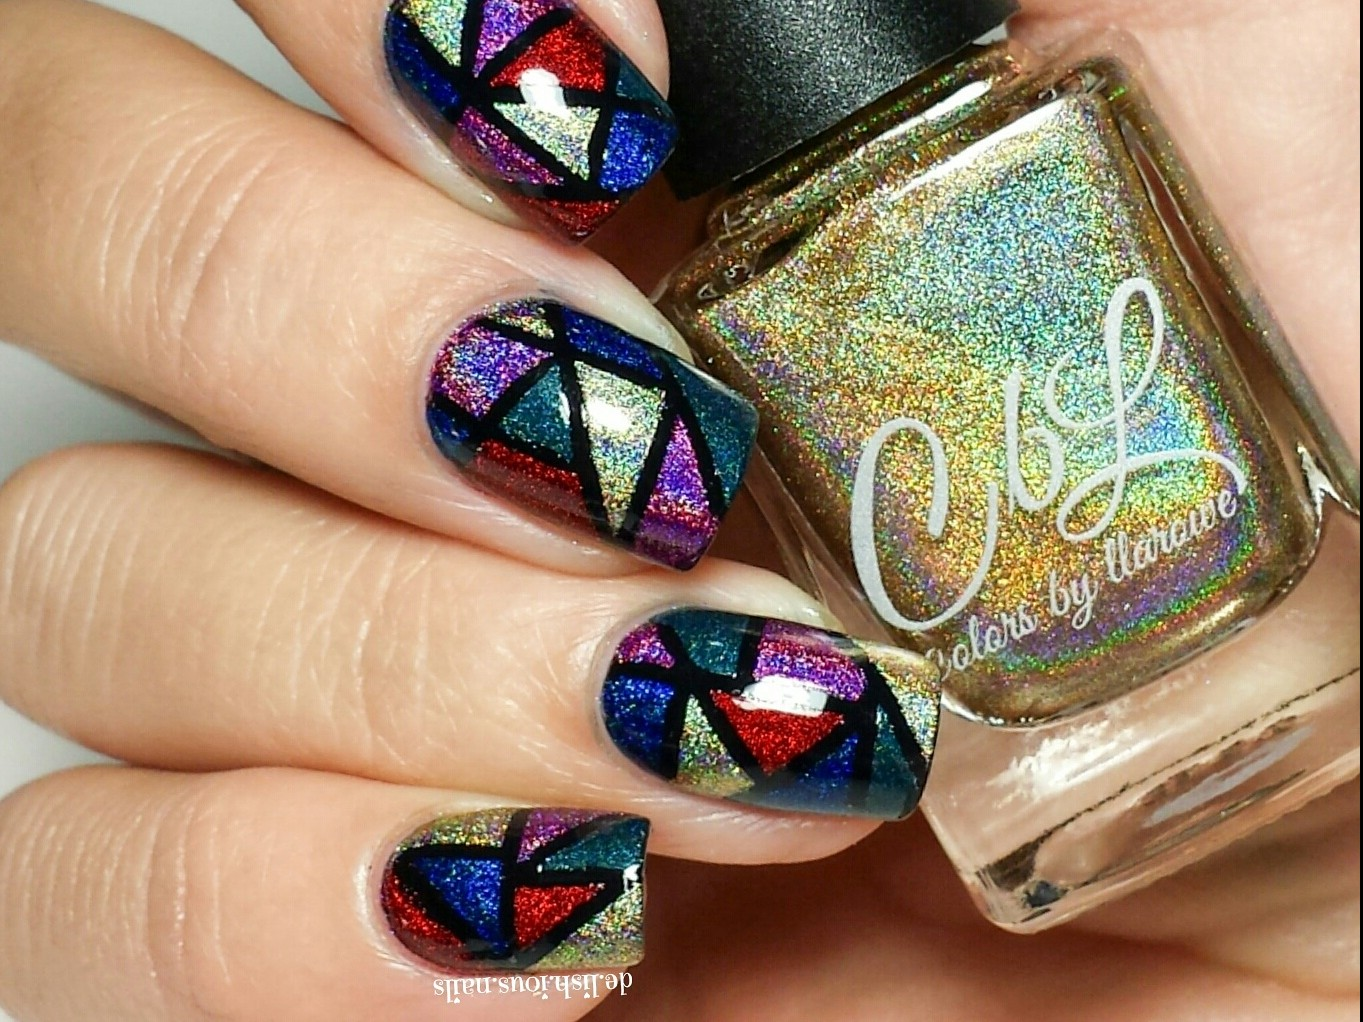 Nails of the Day: Shining stained glass